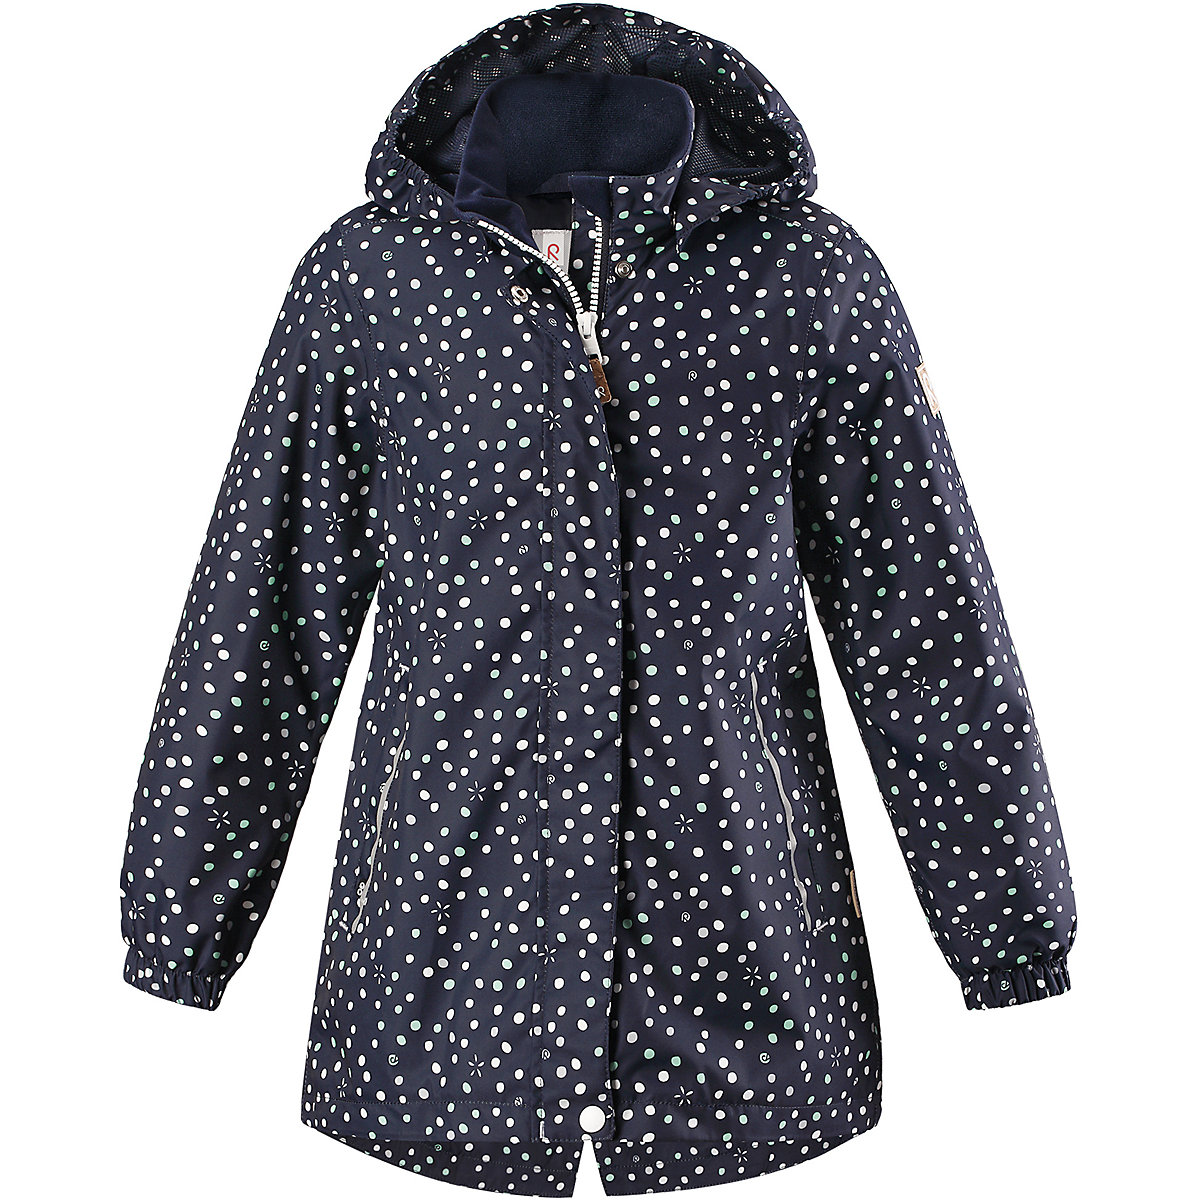 REIMA Jackets 7632638 for girls polyester winter  fur clothes girl 2016 new style popular 18 inch american girl doll pajamas clothes dress for christmas gift abd 072